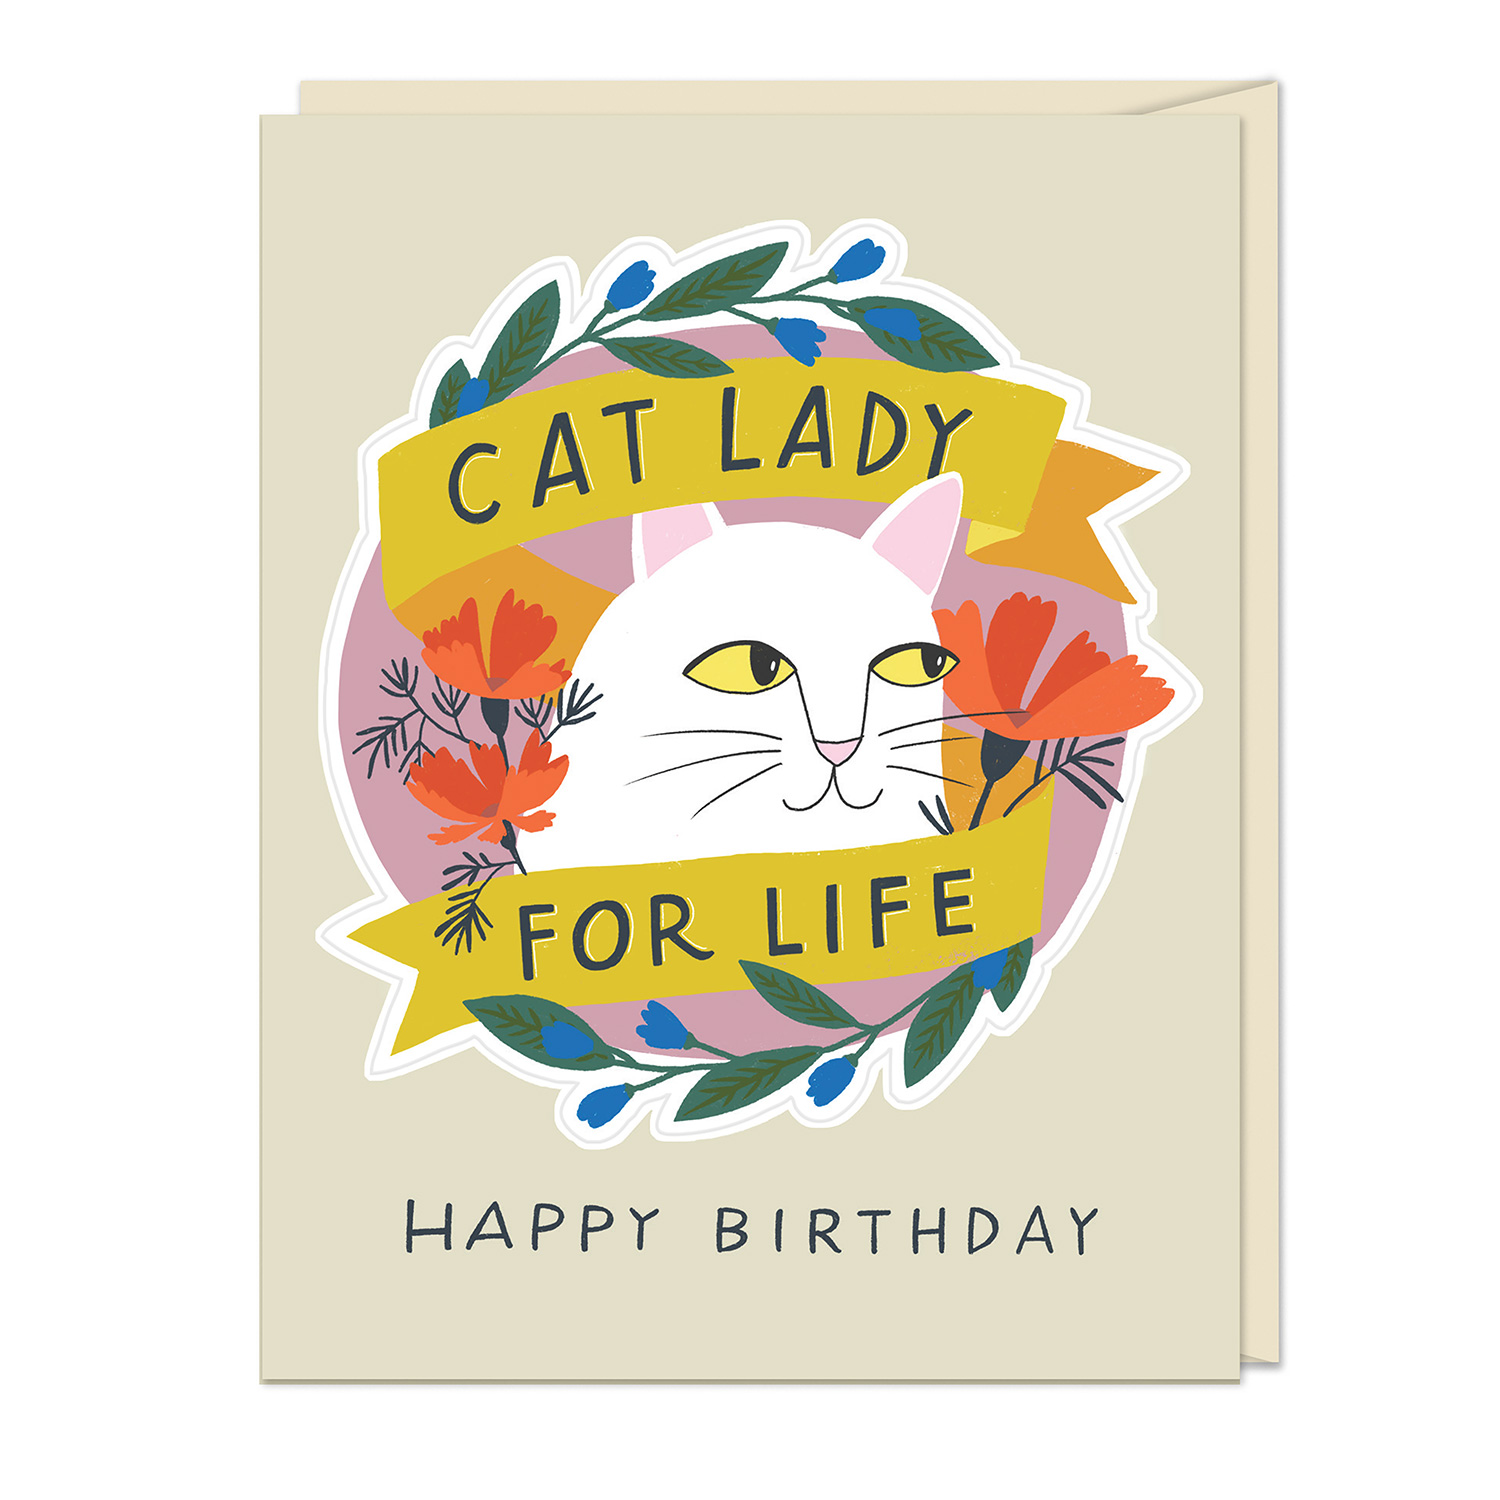 Sticker Cards: Cat Lady for Life